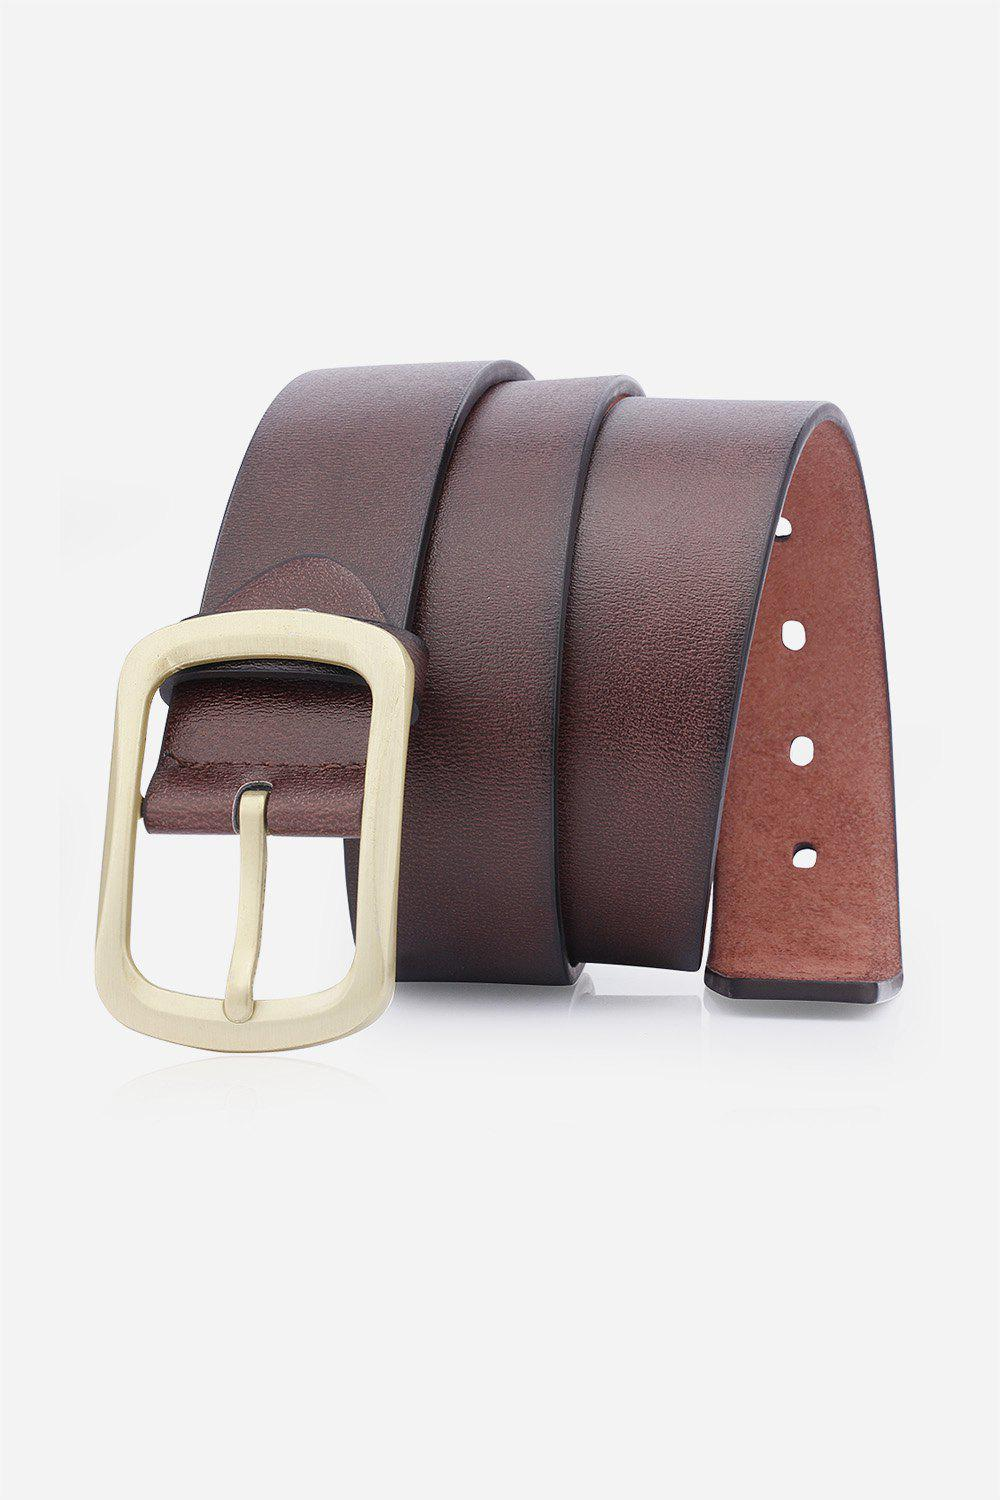 Retro Faux Leather Rectangular Pin Buckle Belt - COFFEE